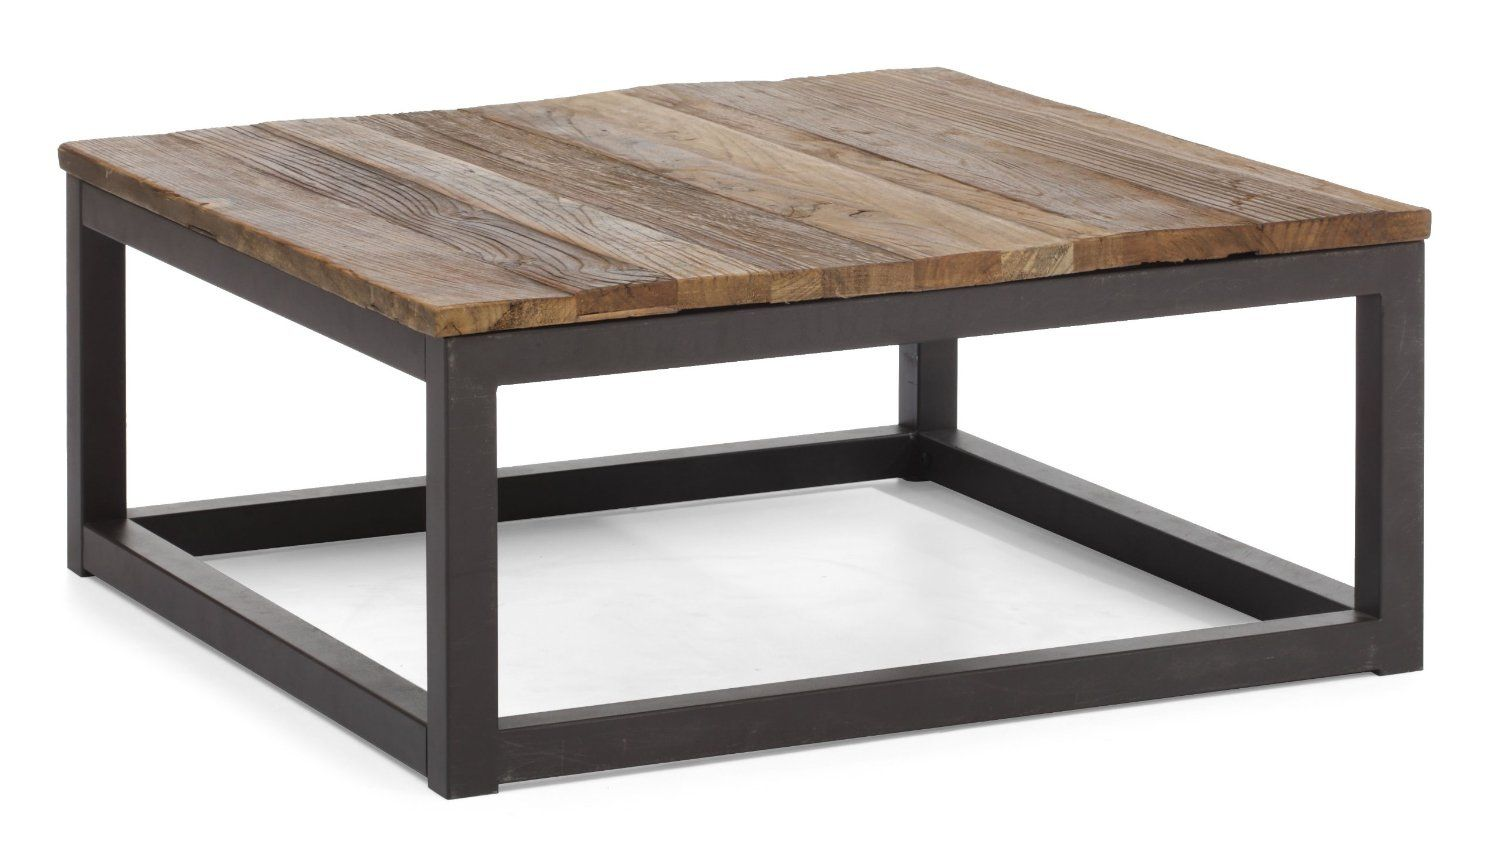 Distressed Wood Coffee Table   Modern Living Room Furniture Sets Check More  At Http:/